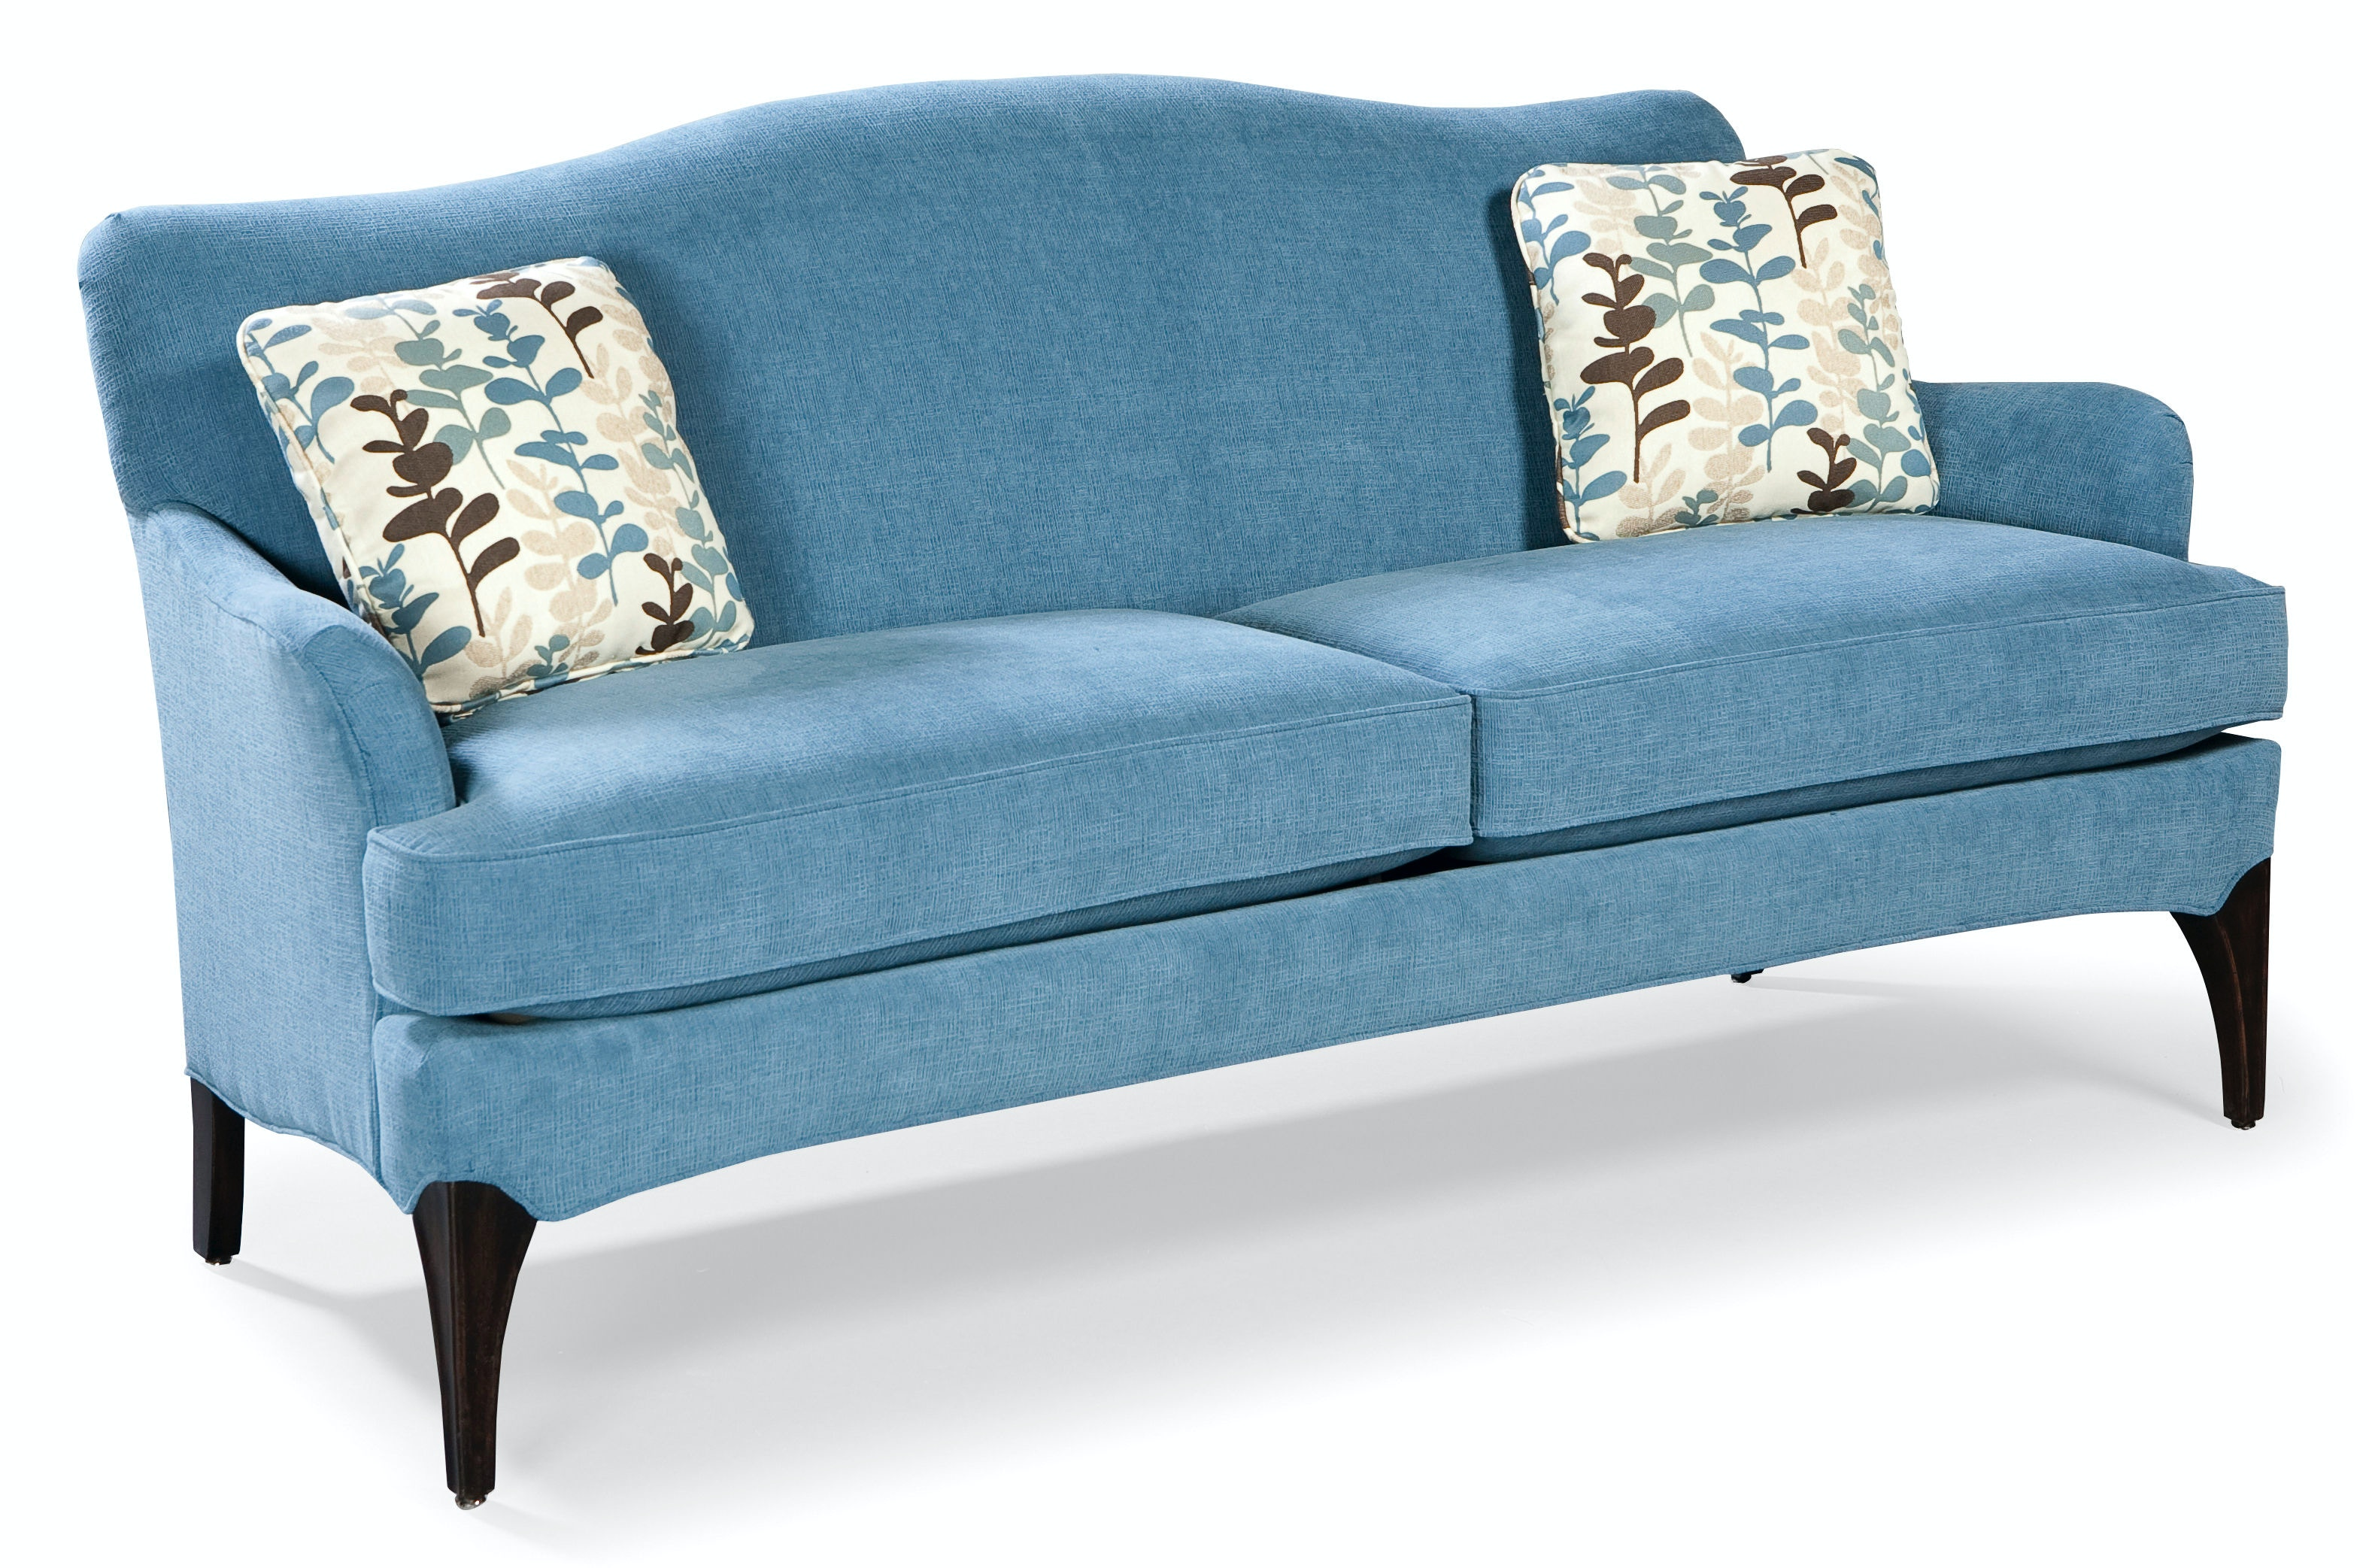 Fairfield Chair pany Living Room Sofa 5729 50 Quality